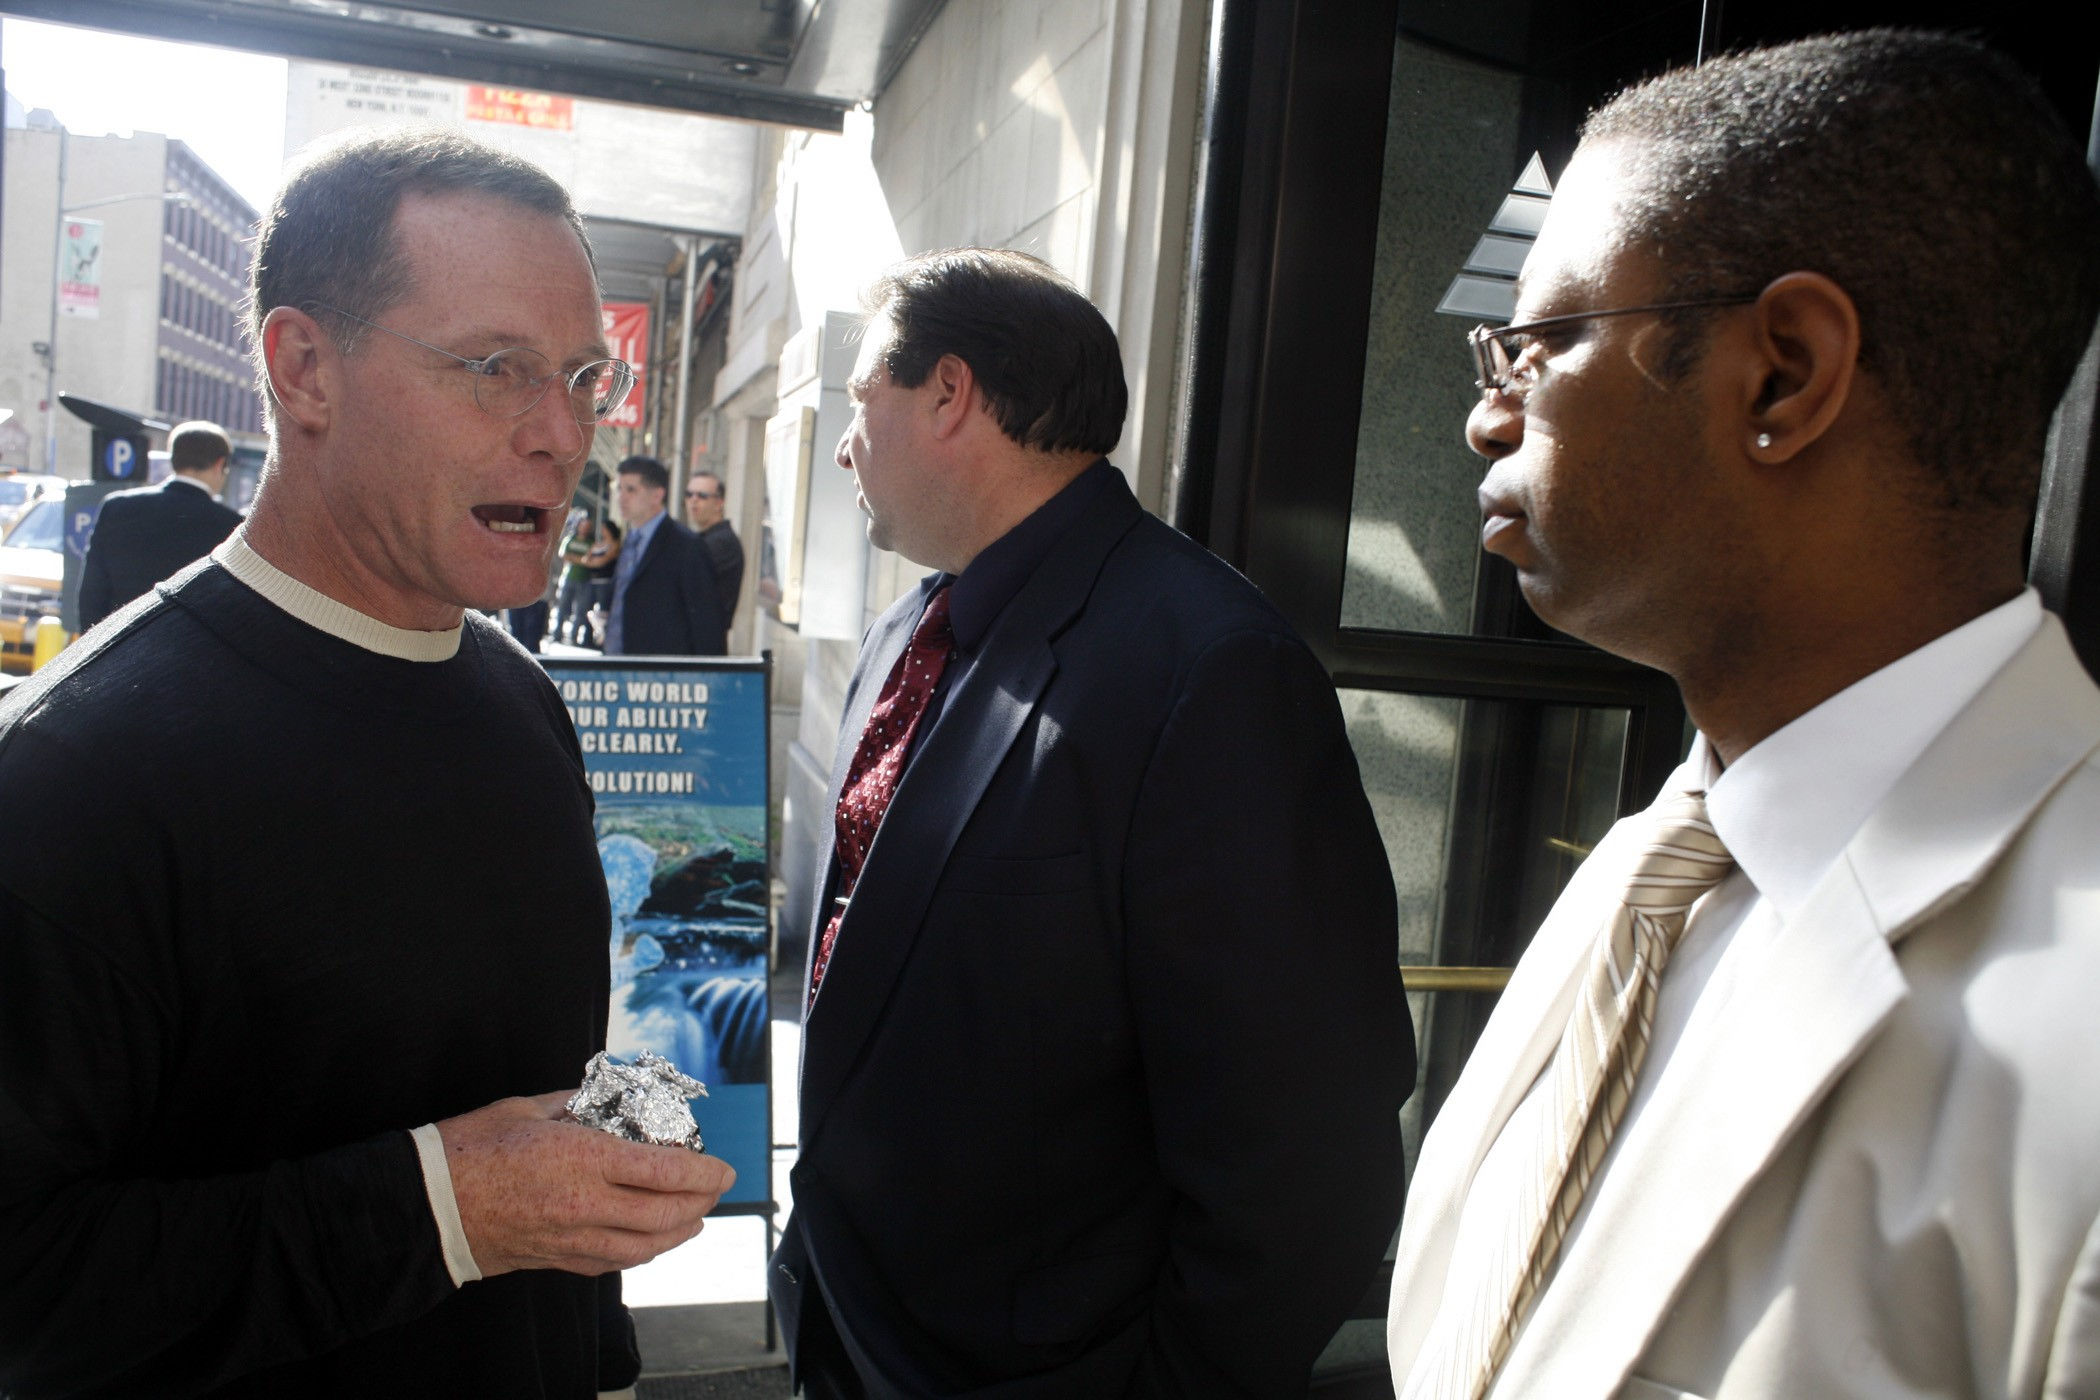 Jason Beghe explains to Scientology's hired muscle that the $1 million he paid the organization entitled him to come in. But they disagreed. Perhaps Beghe should have offered the cake in foil wrap that Anonymous had given him.More photos from the protest here.